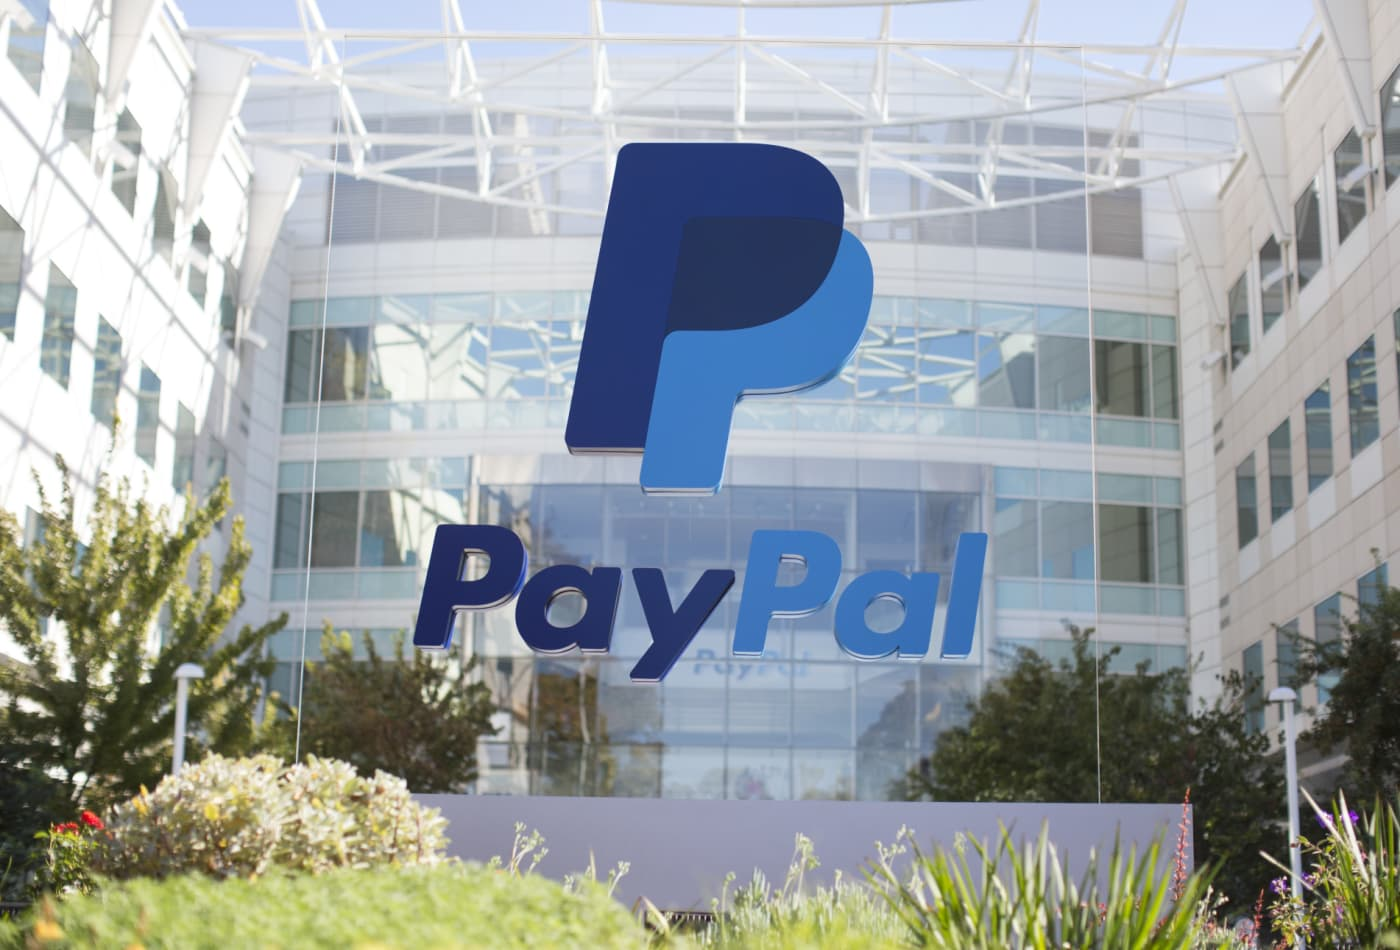 PayPal CEO touts 'next generation digital wallet' after earnings beat